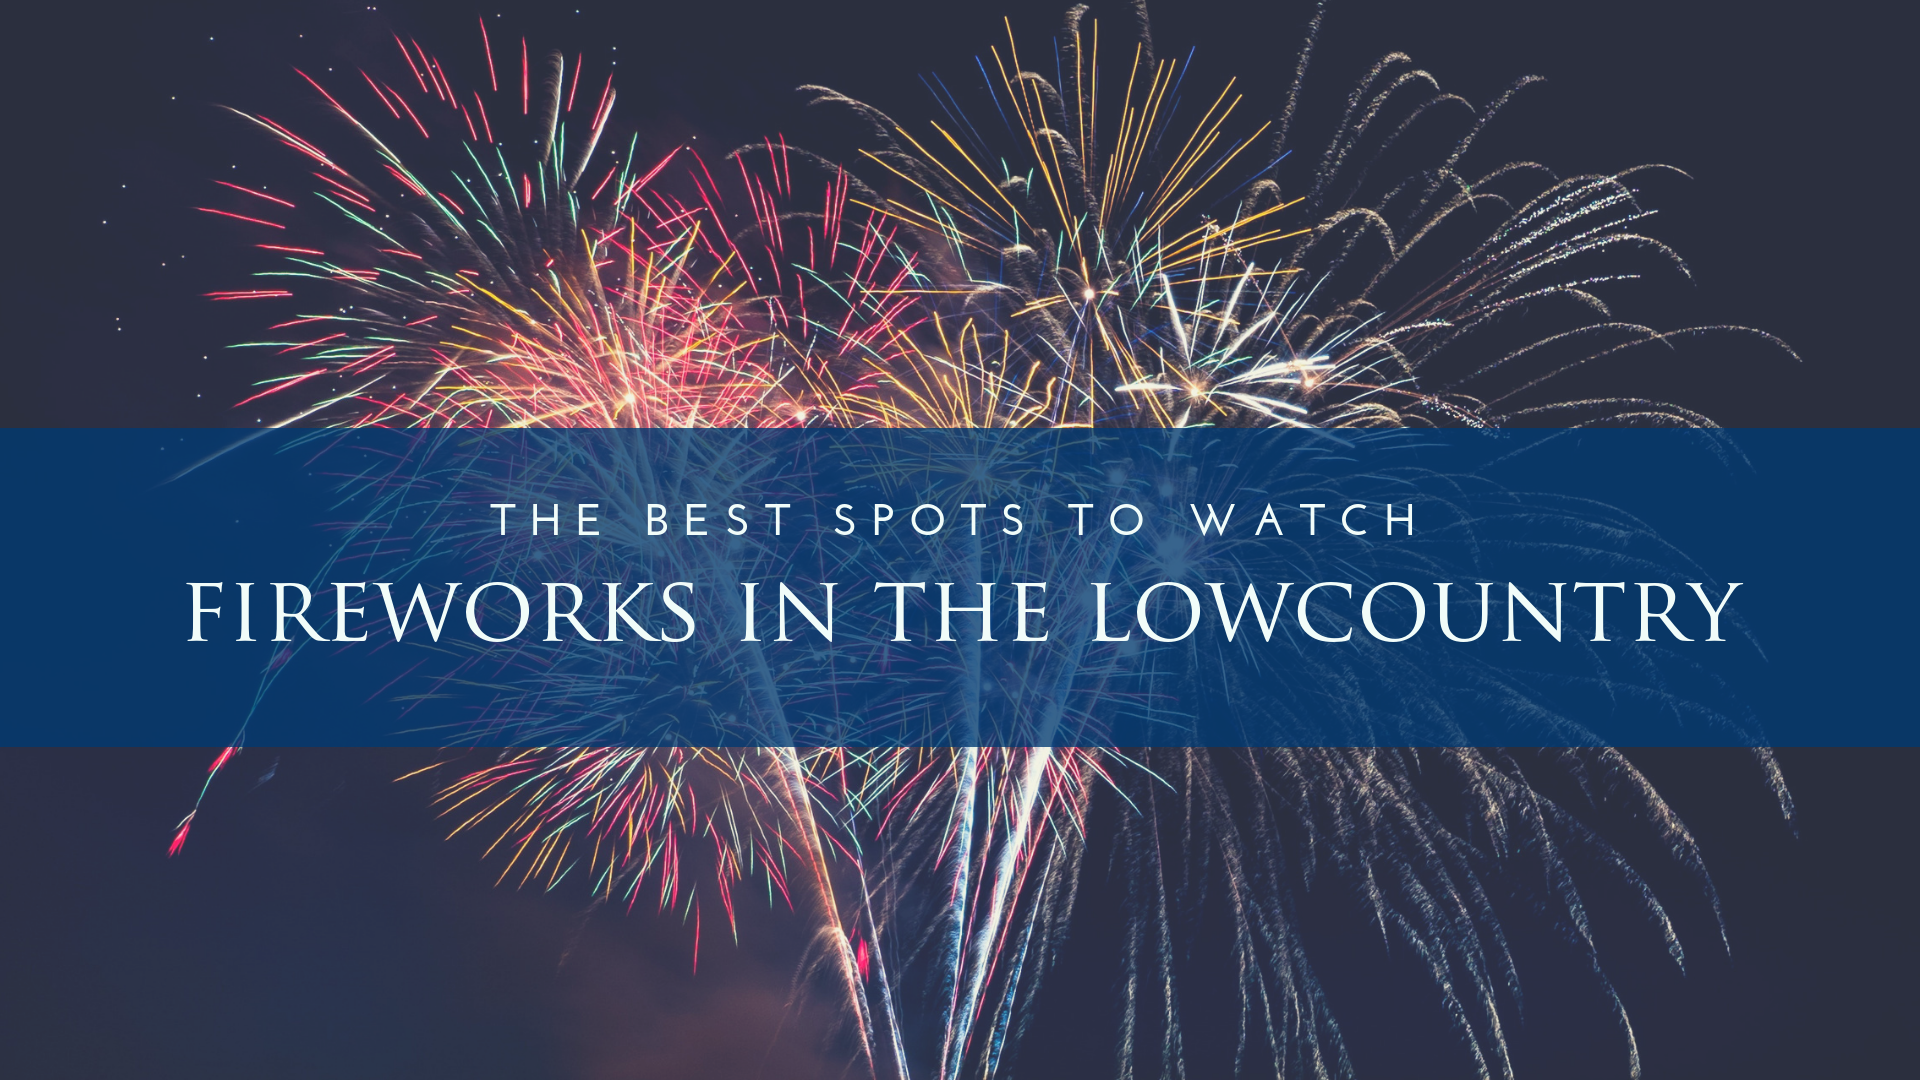 Fireworks in the Lowcountry